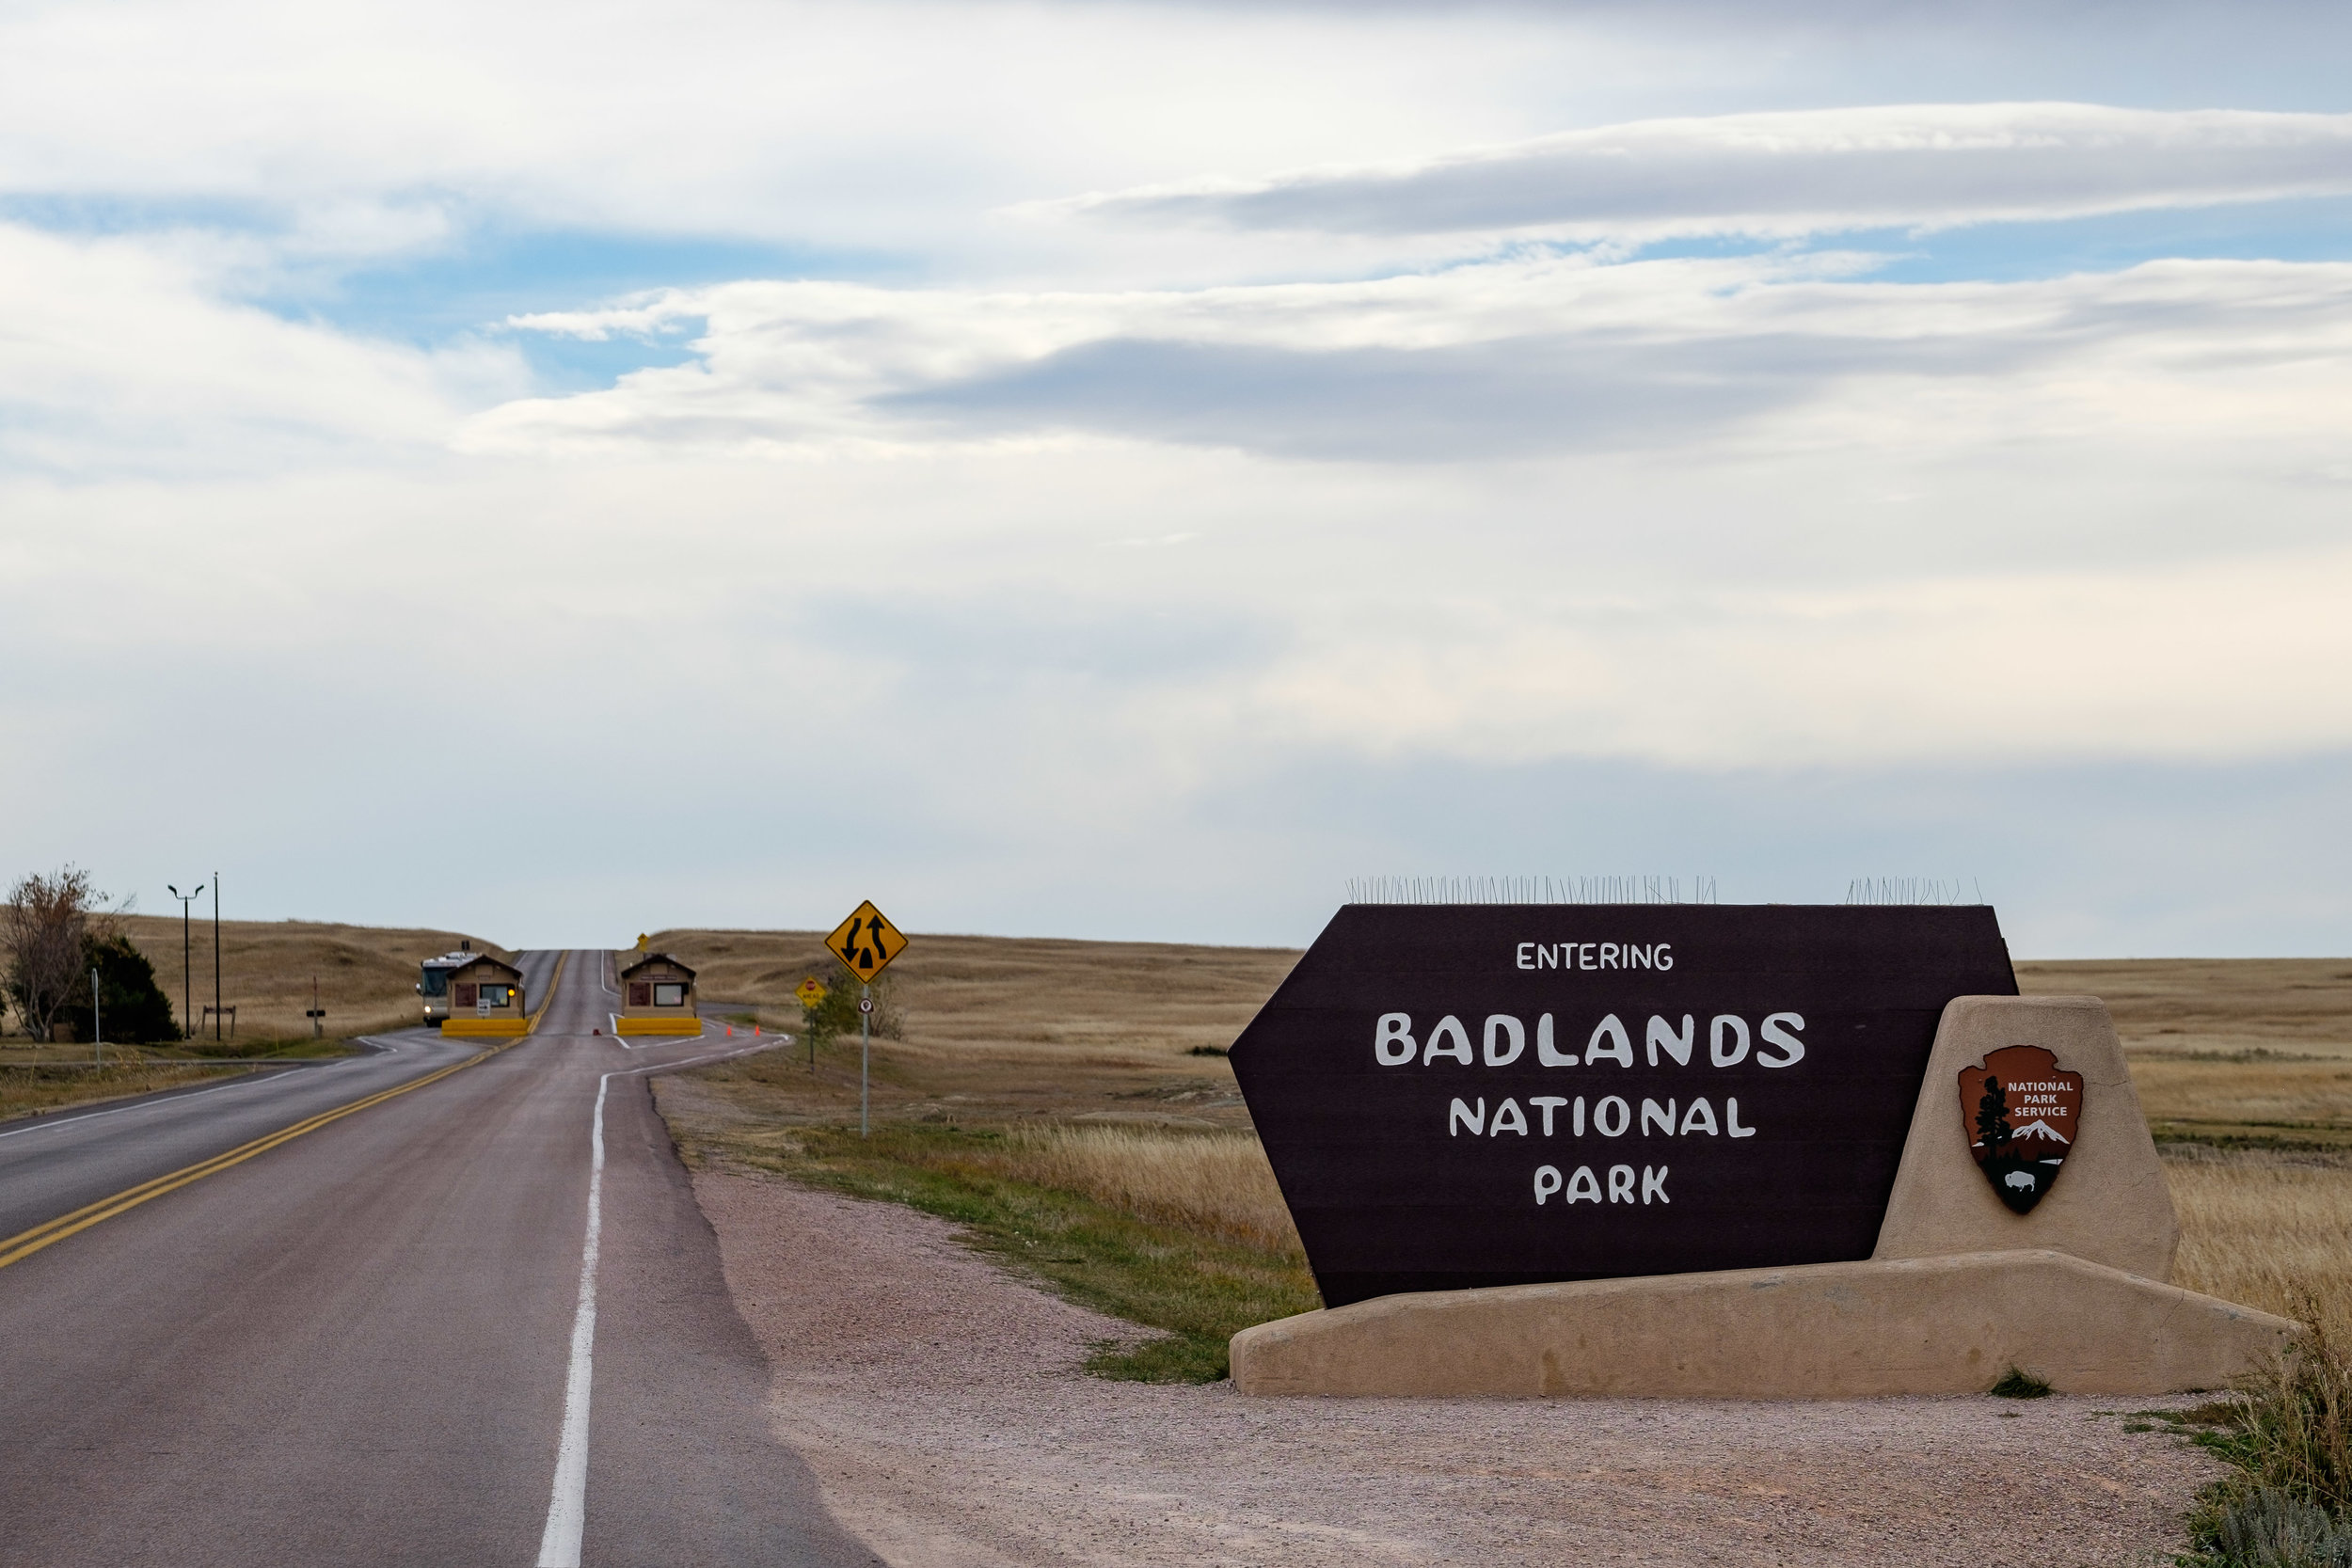 The northeast entrance to Badlands National Park.